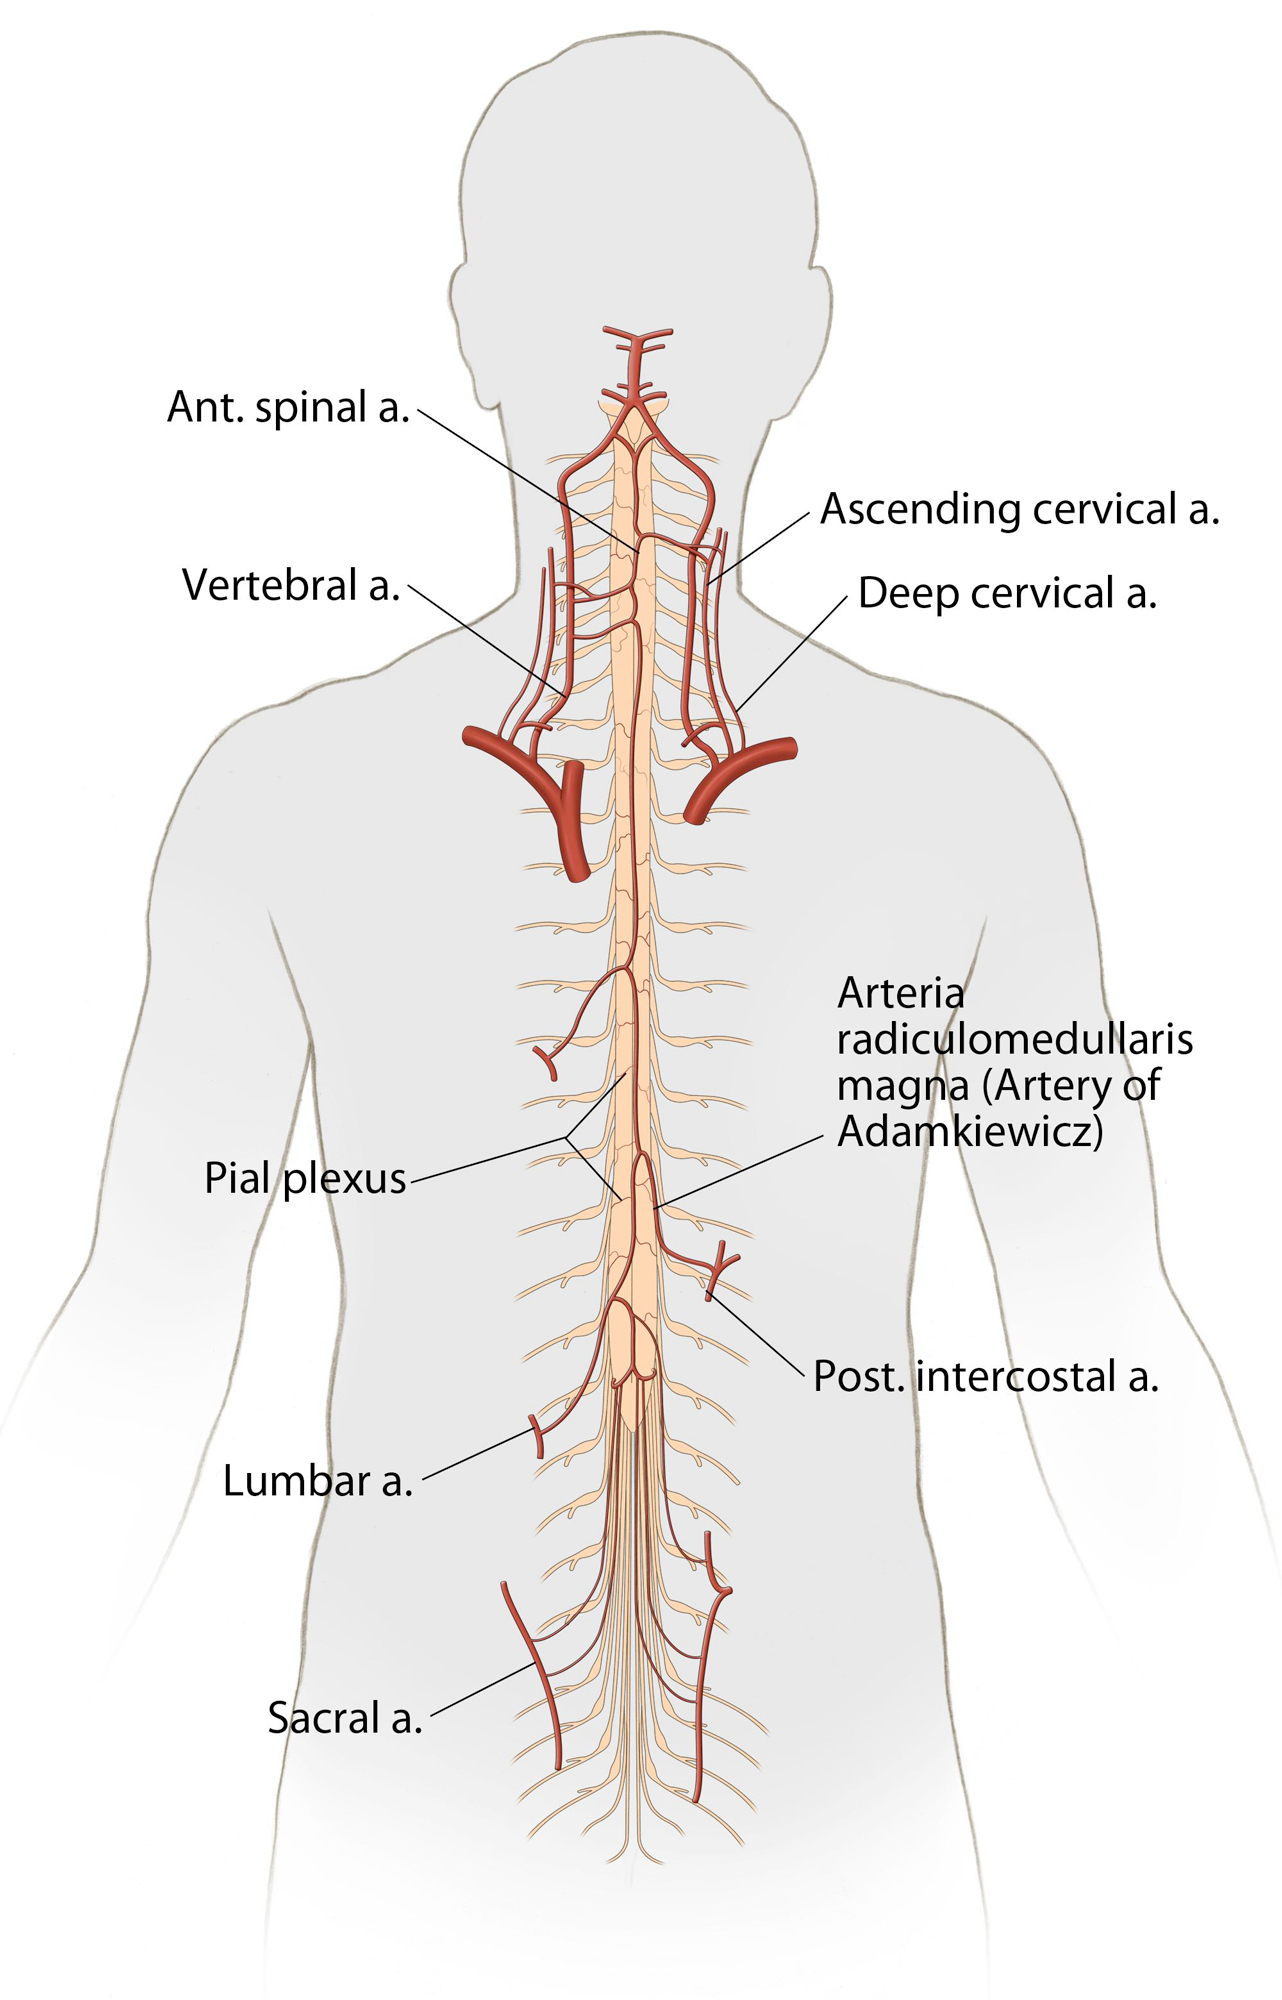 Operative Spinal Cord Anatomy The Neurosurgical Atlas By Aaron Cohen Gadol M D It represents 60% of spinal cord gliomas, 90% of filum terminale tumors. operative spinal cord anatomy the neurosurgical atlas by aaron cohen gadol m d